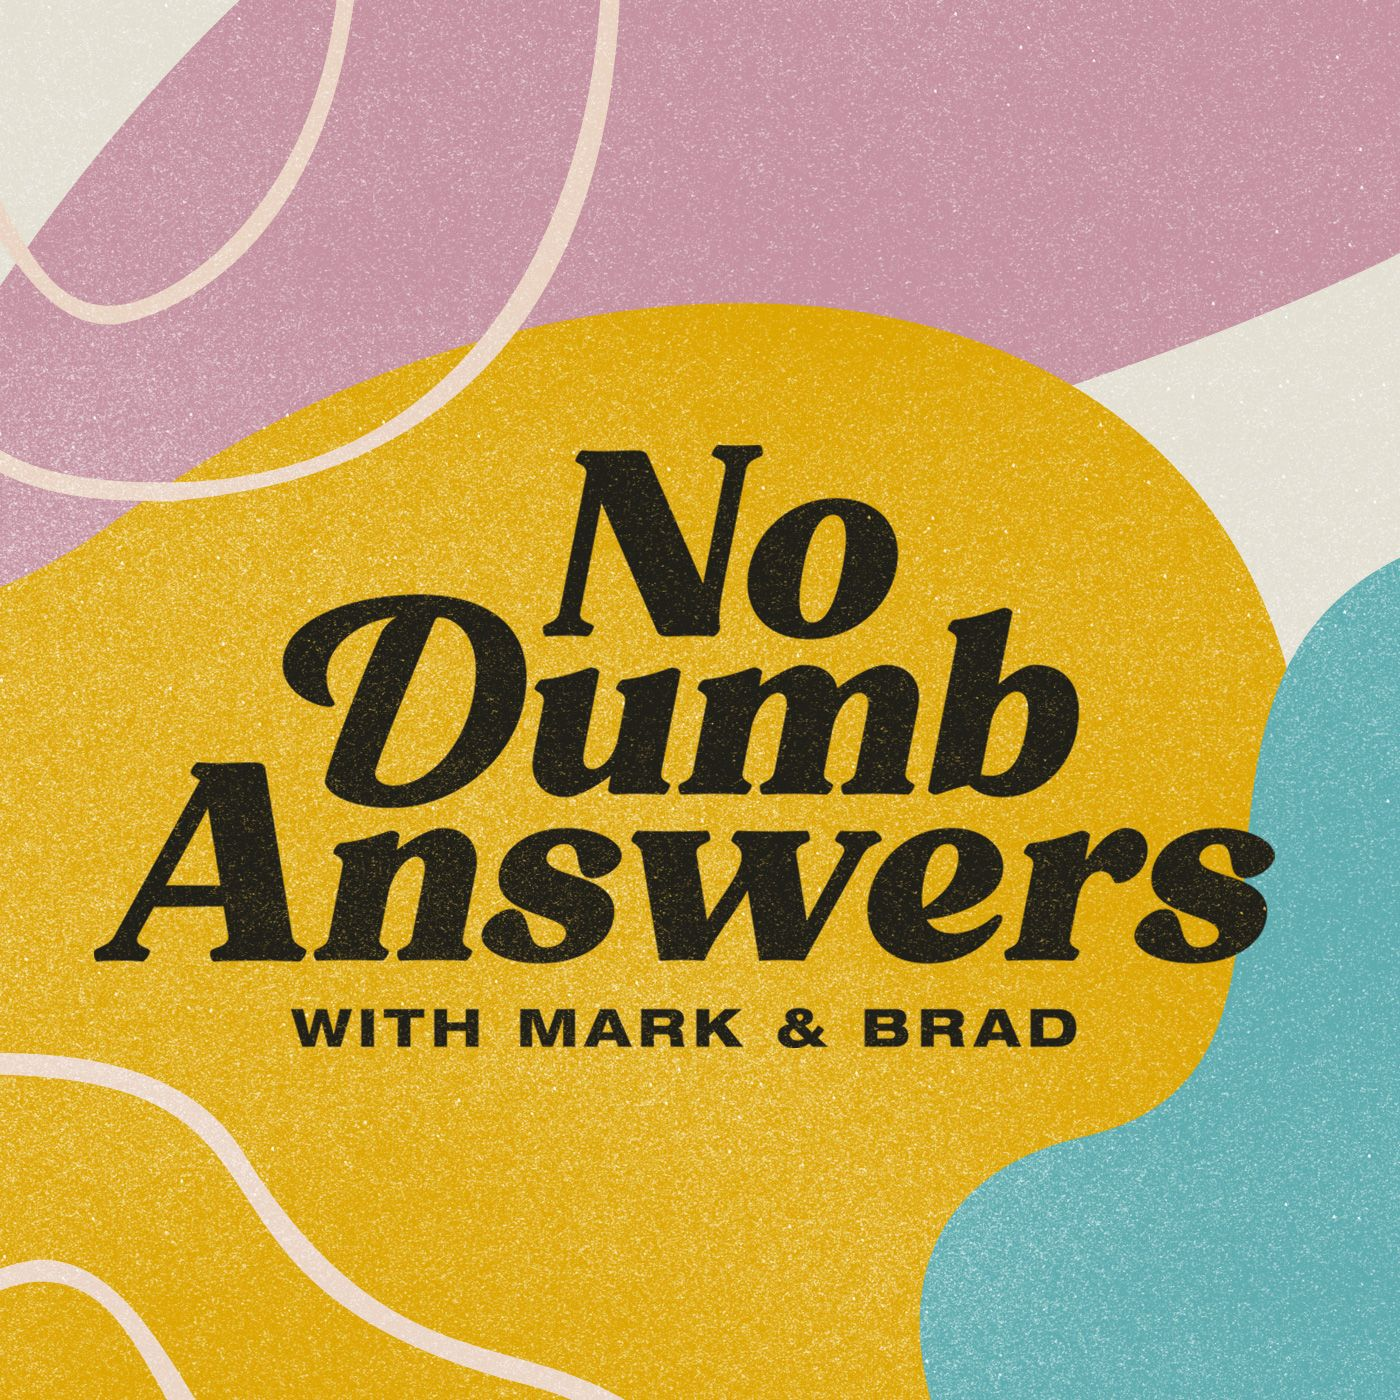 Introducing No Dumb Answers with Mark & Brad